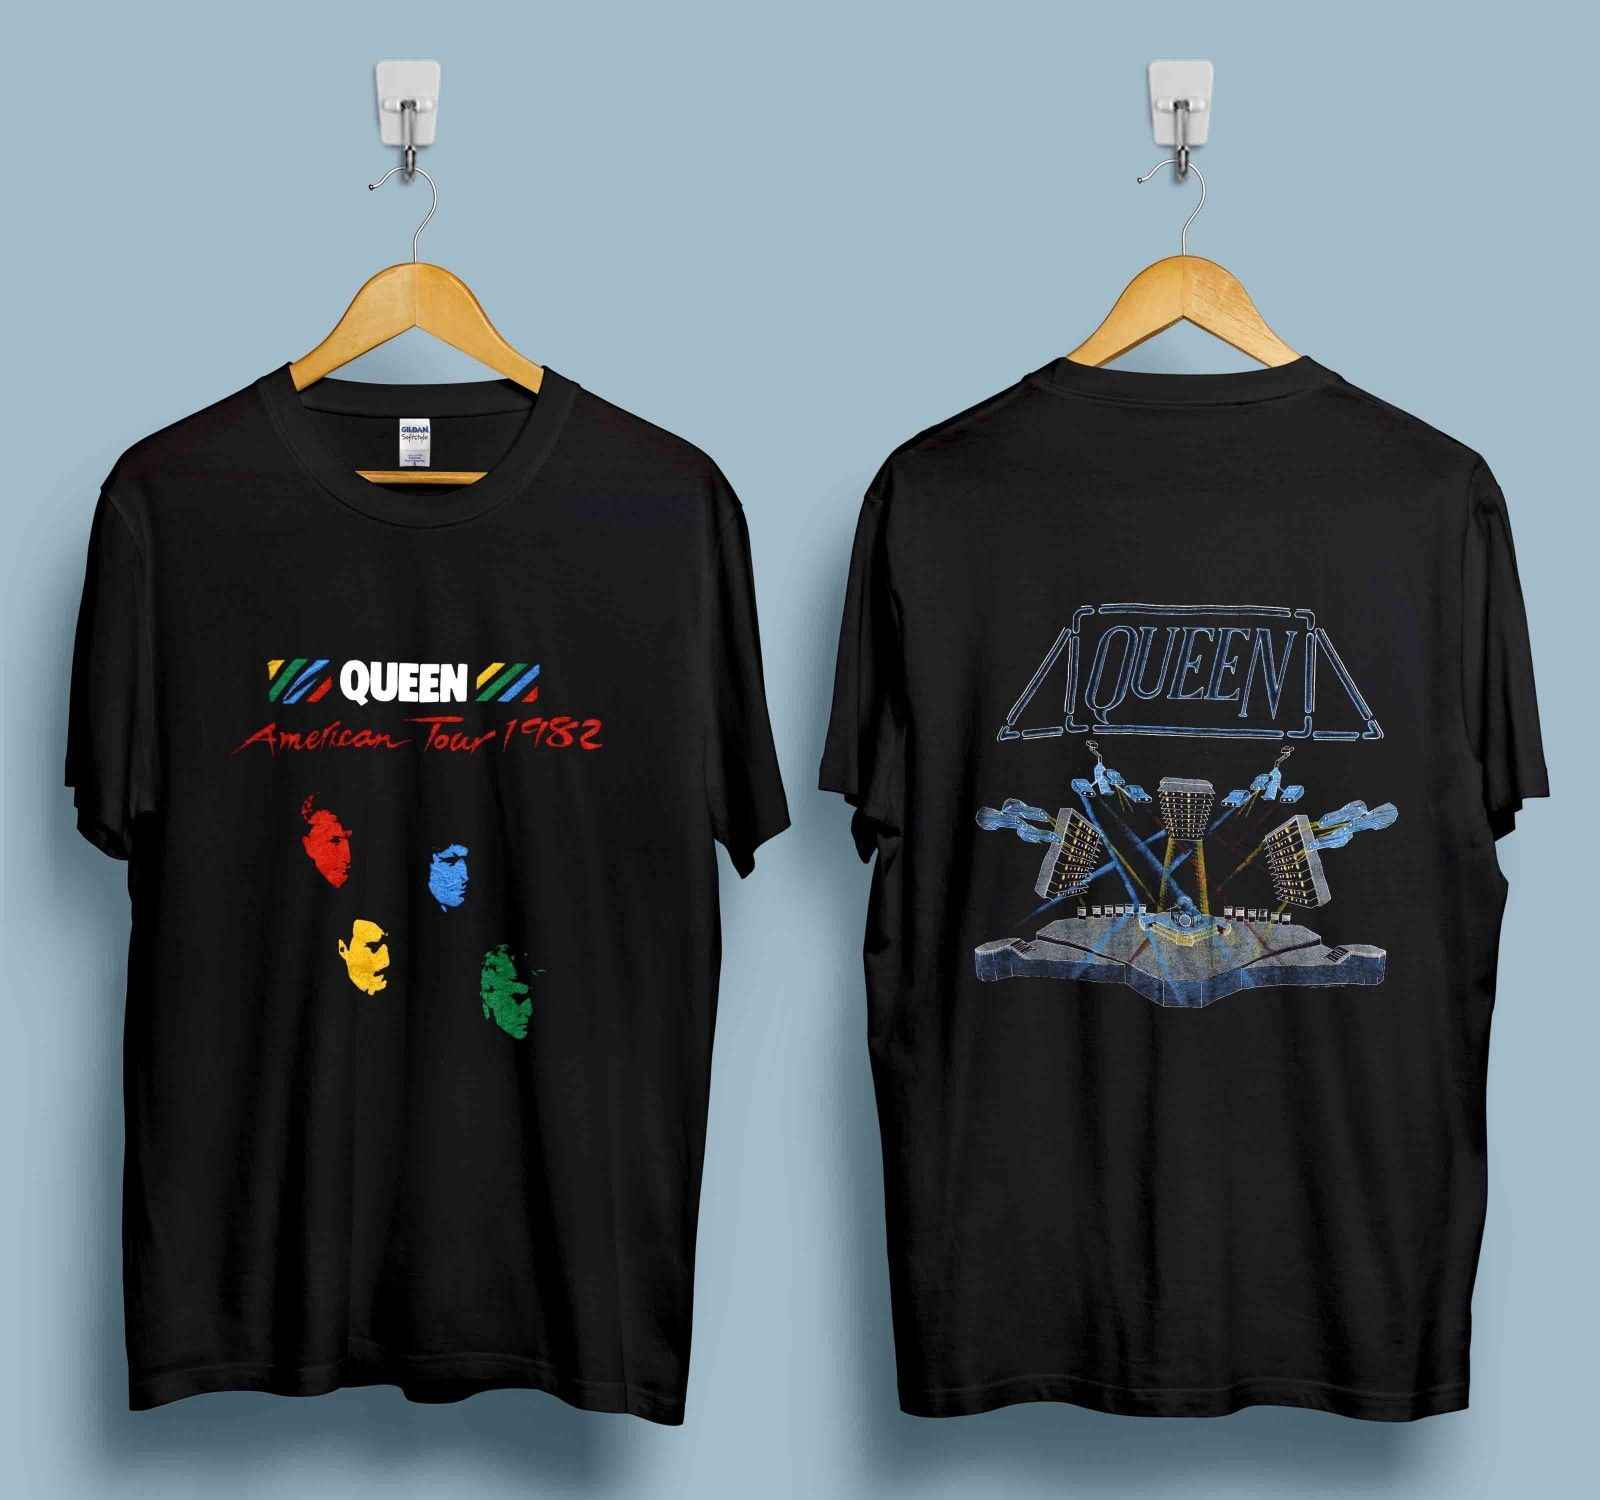 ba18ec4f2 Detail Feedback Questions about VINTAGE QUEEN TSHIRT 1982 HOT SPACE TOUR  GLAM ROCK BAND FREDDIE MERCURY REPRINT Hot 2018 Summer Men'S T Shirt  Fashion on ...